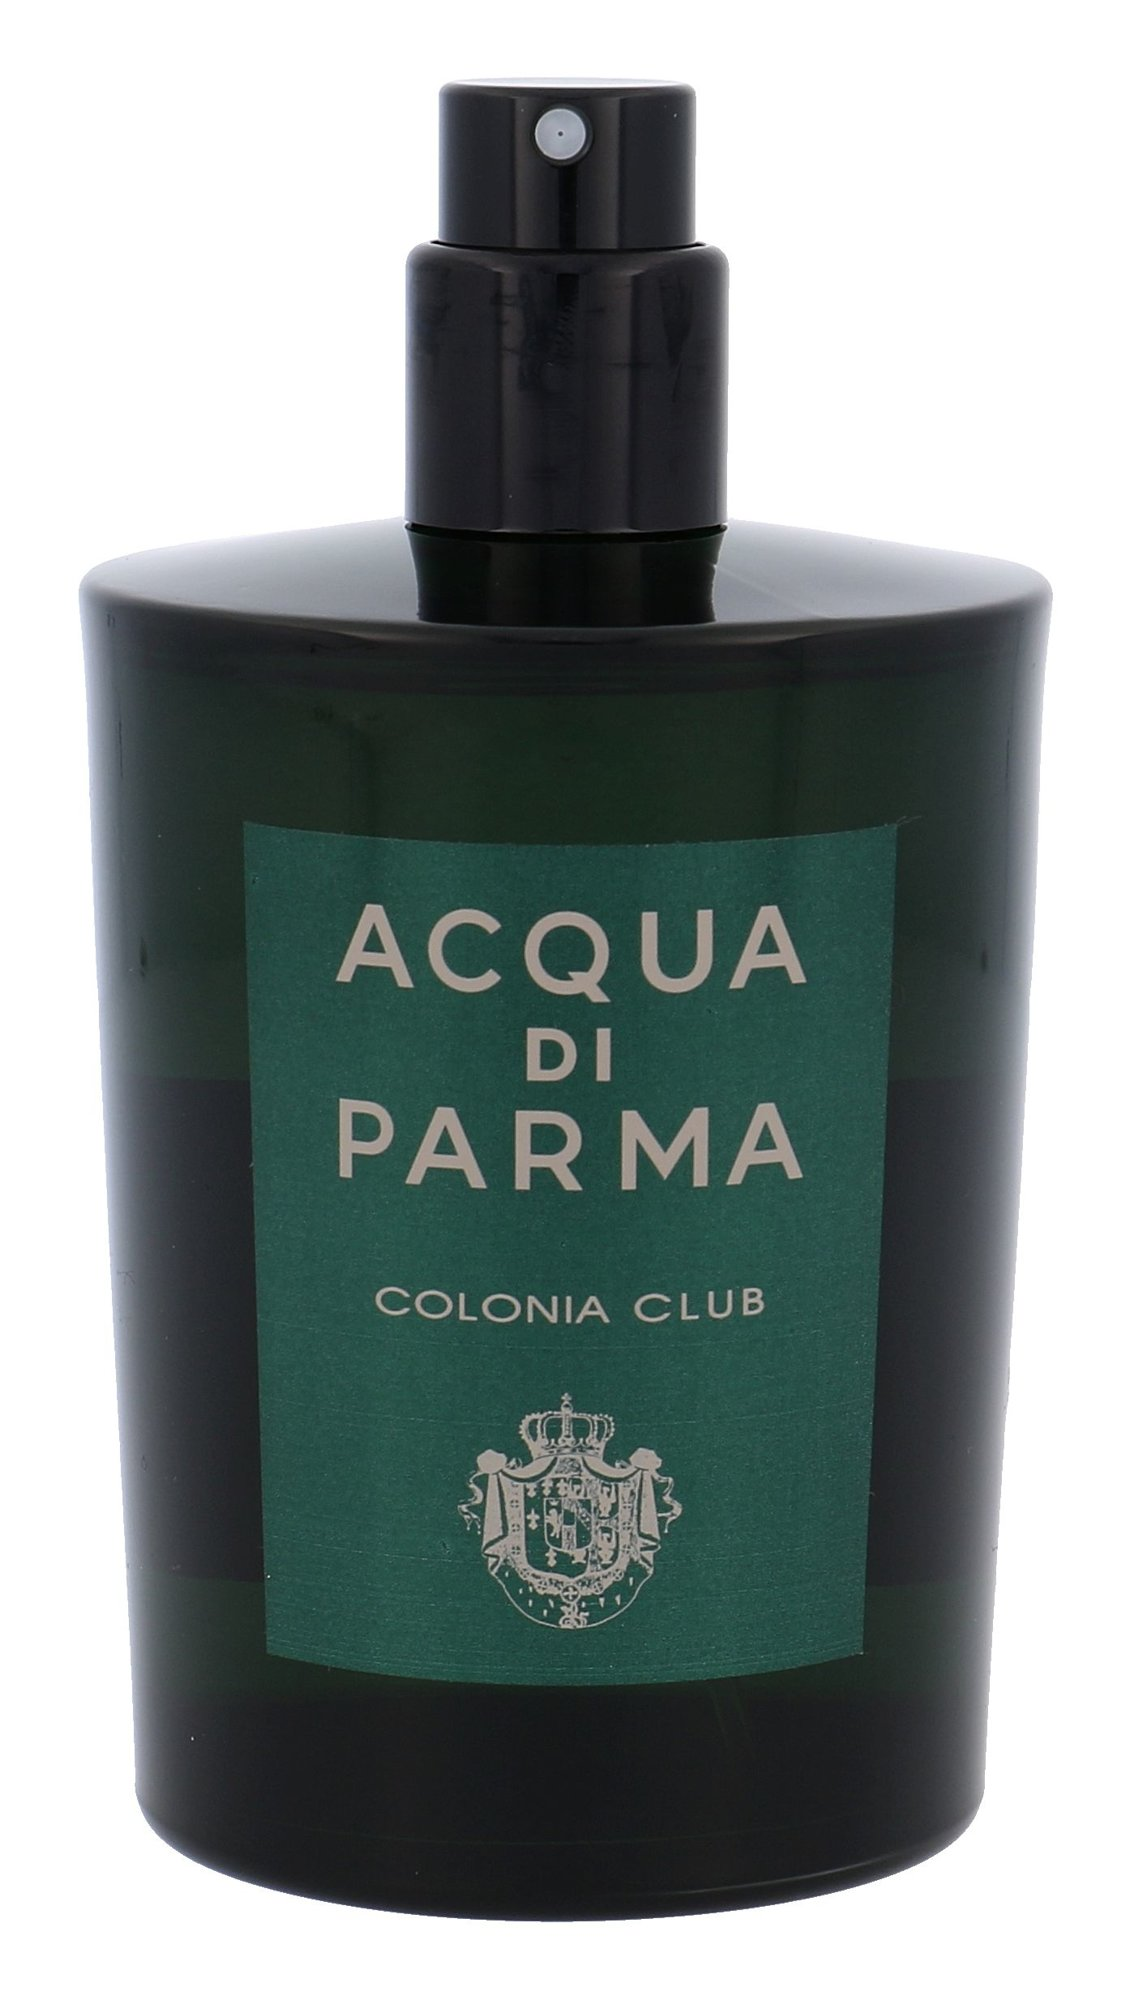 Acqua di Parma Colonia Club Cologne 100ml